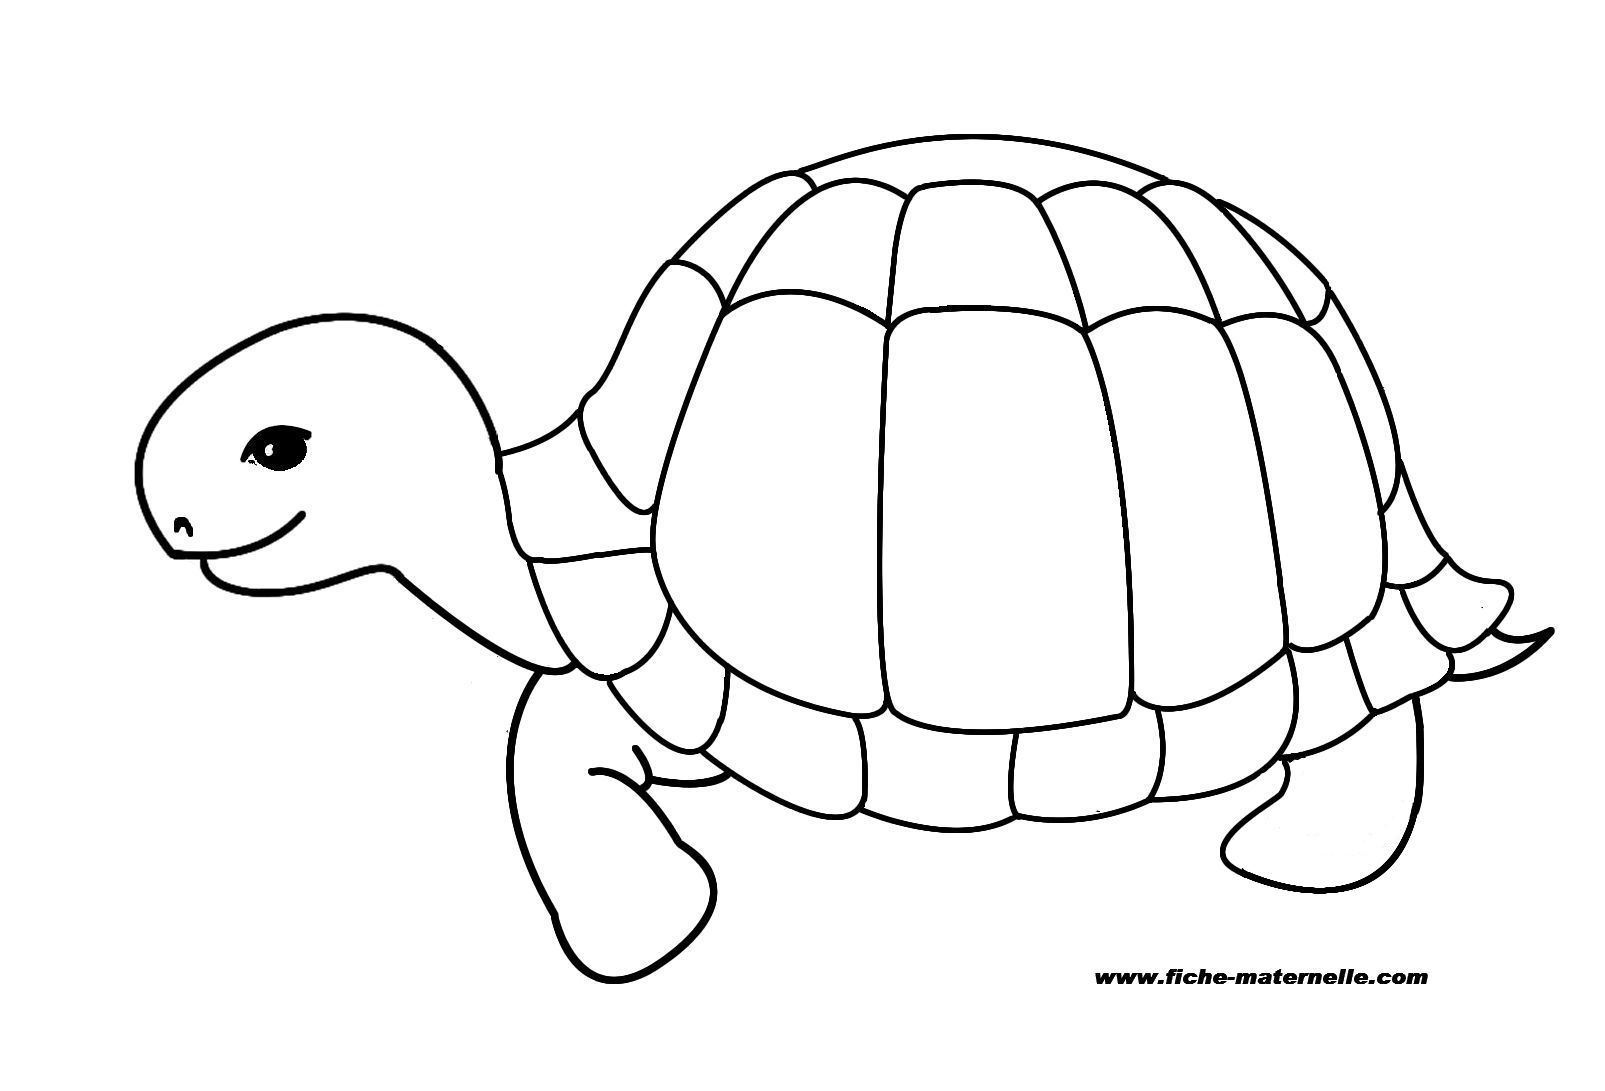 Coloriage Tortue A Colorier Dessin A Imprimer Easter Coloring Pictures Butterfly Coloring Page Colorful Butterflies